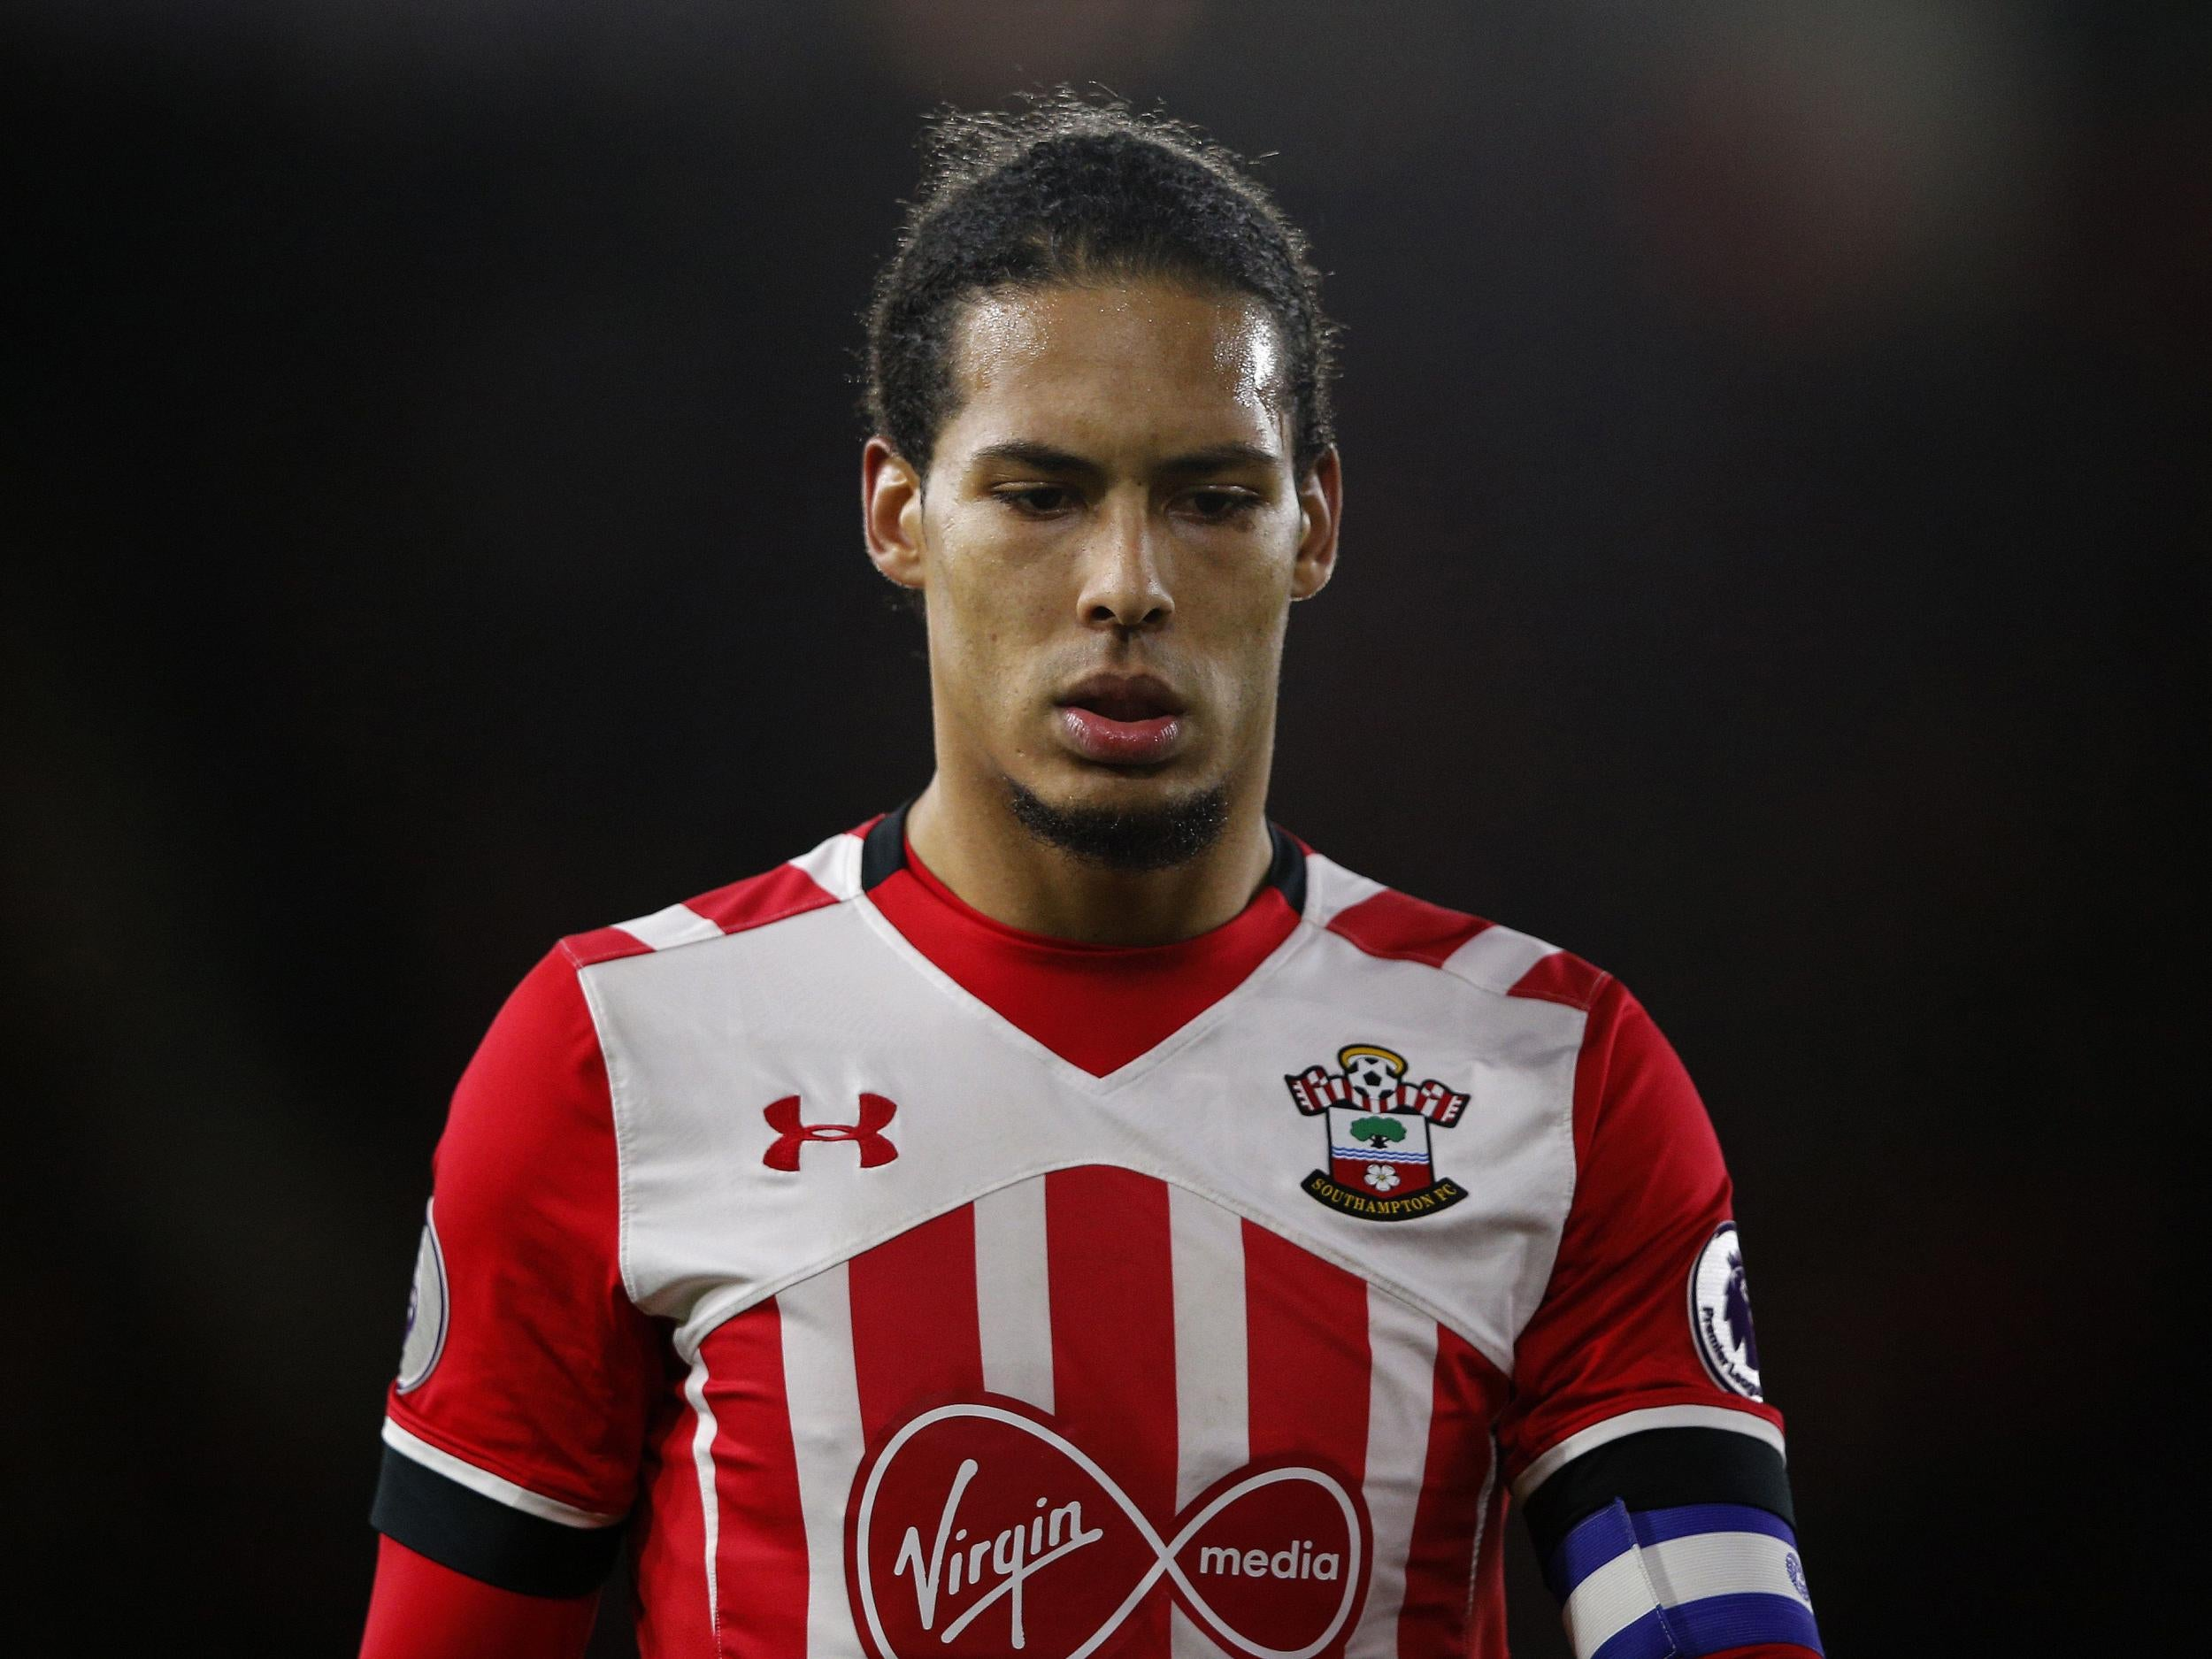 Virgil Van Dijk Hands In Transfer Request To Try Force Through Liverpool Move After Being Insulted By Southampton The Independent The Independent